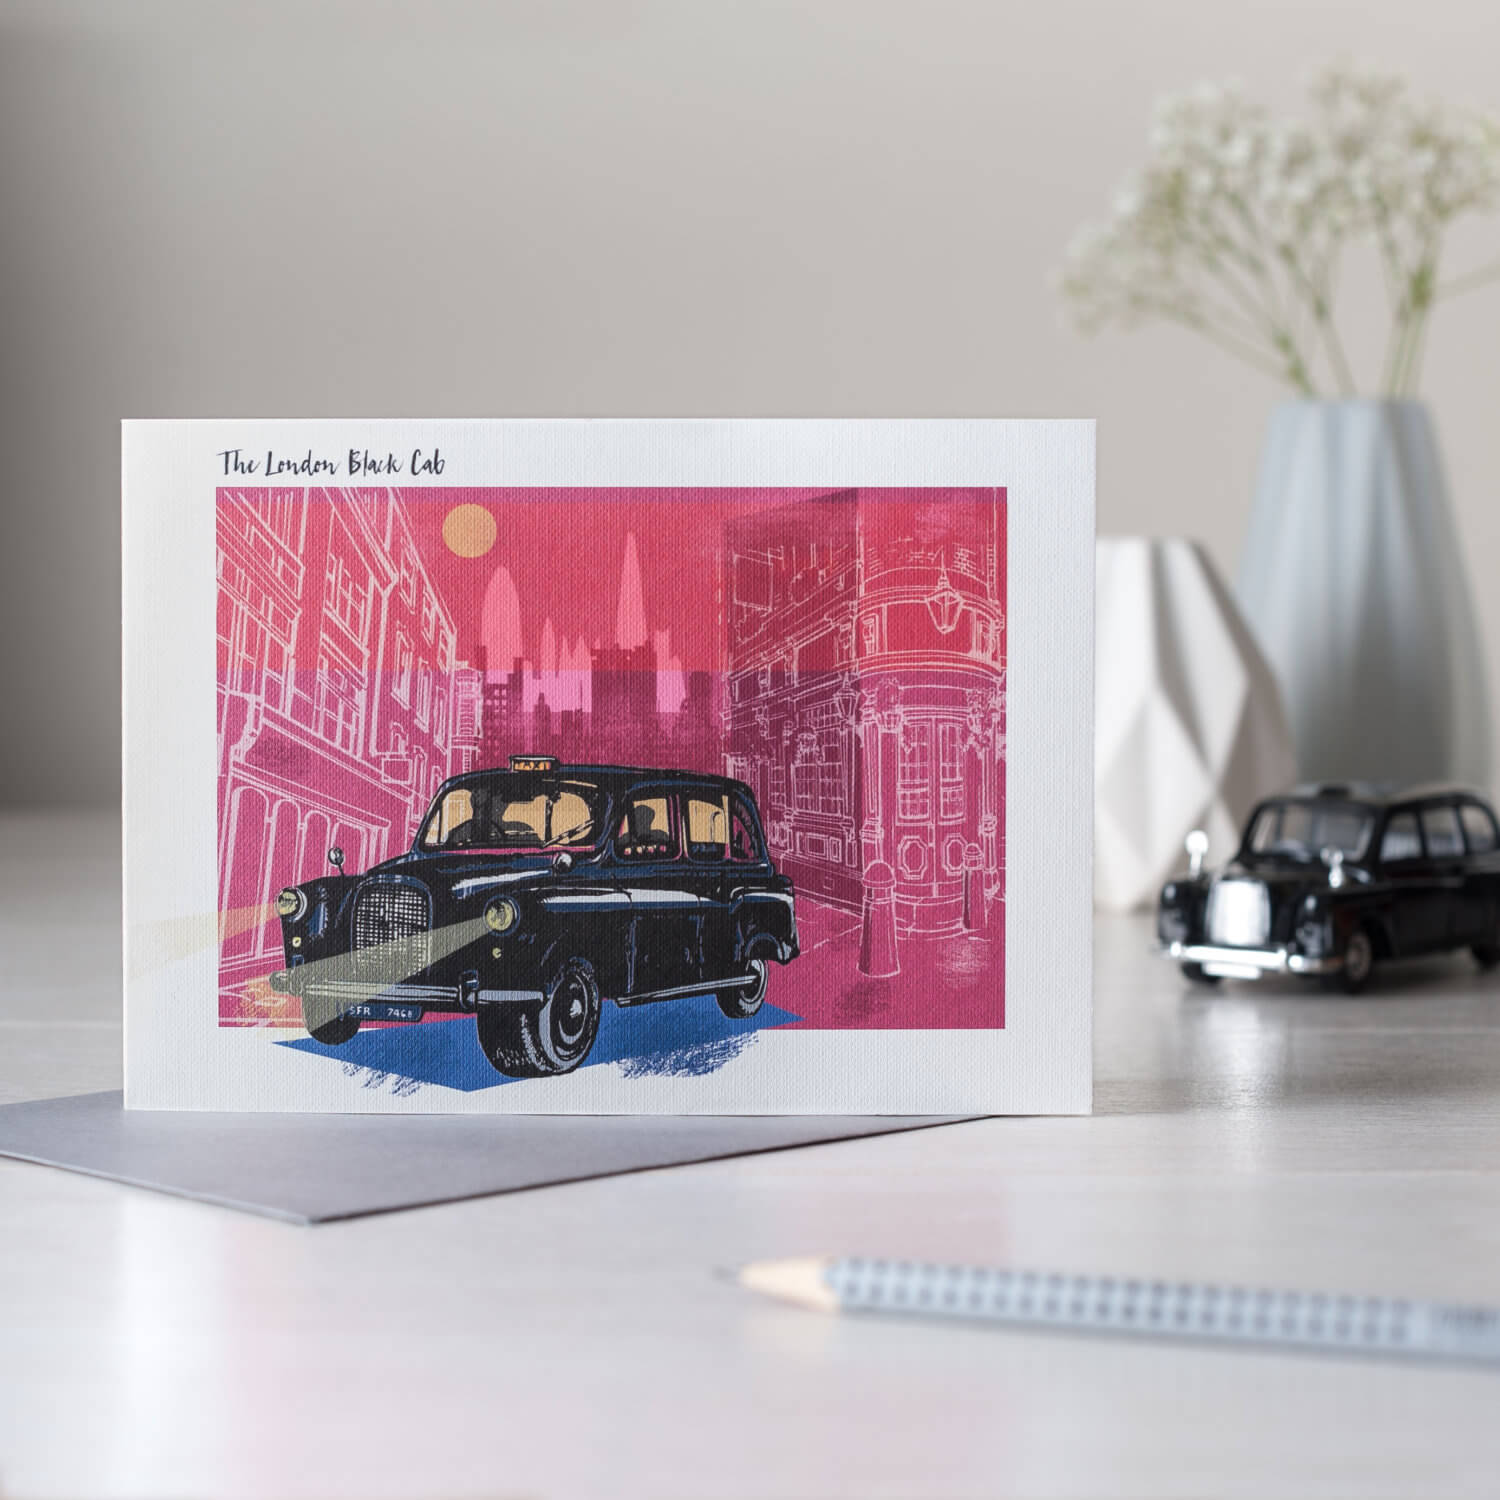 Black London taxi cab greetings card and accompanying props